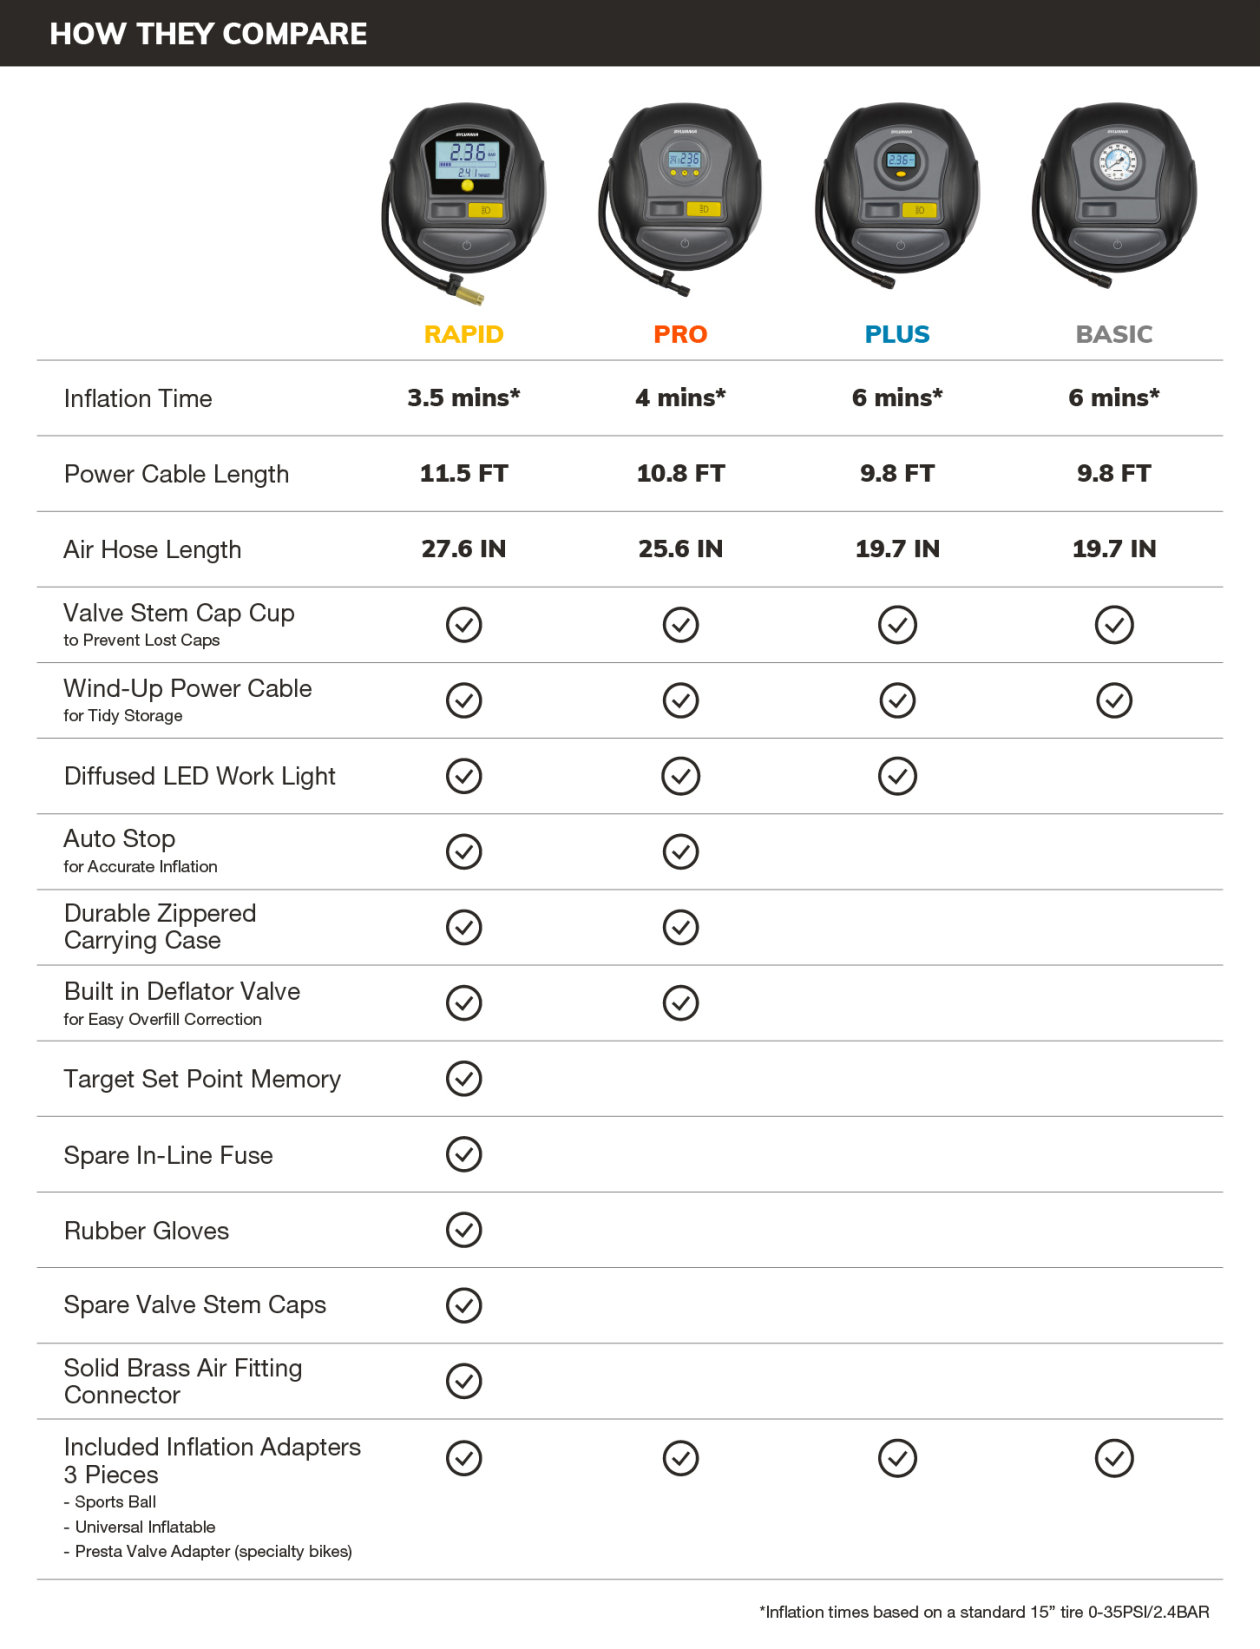 Roadsight Dash Camera Comparison Chart